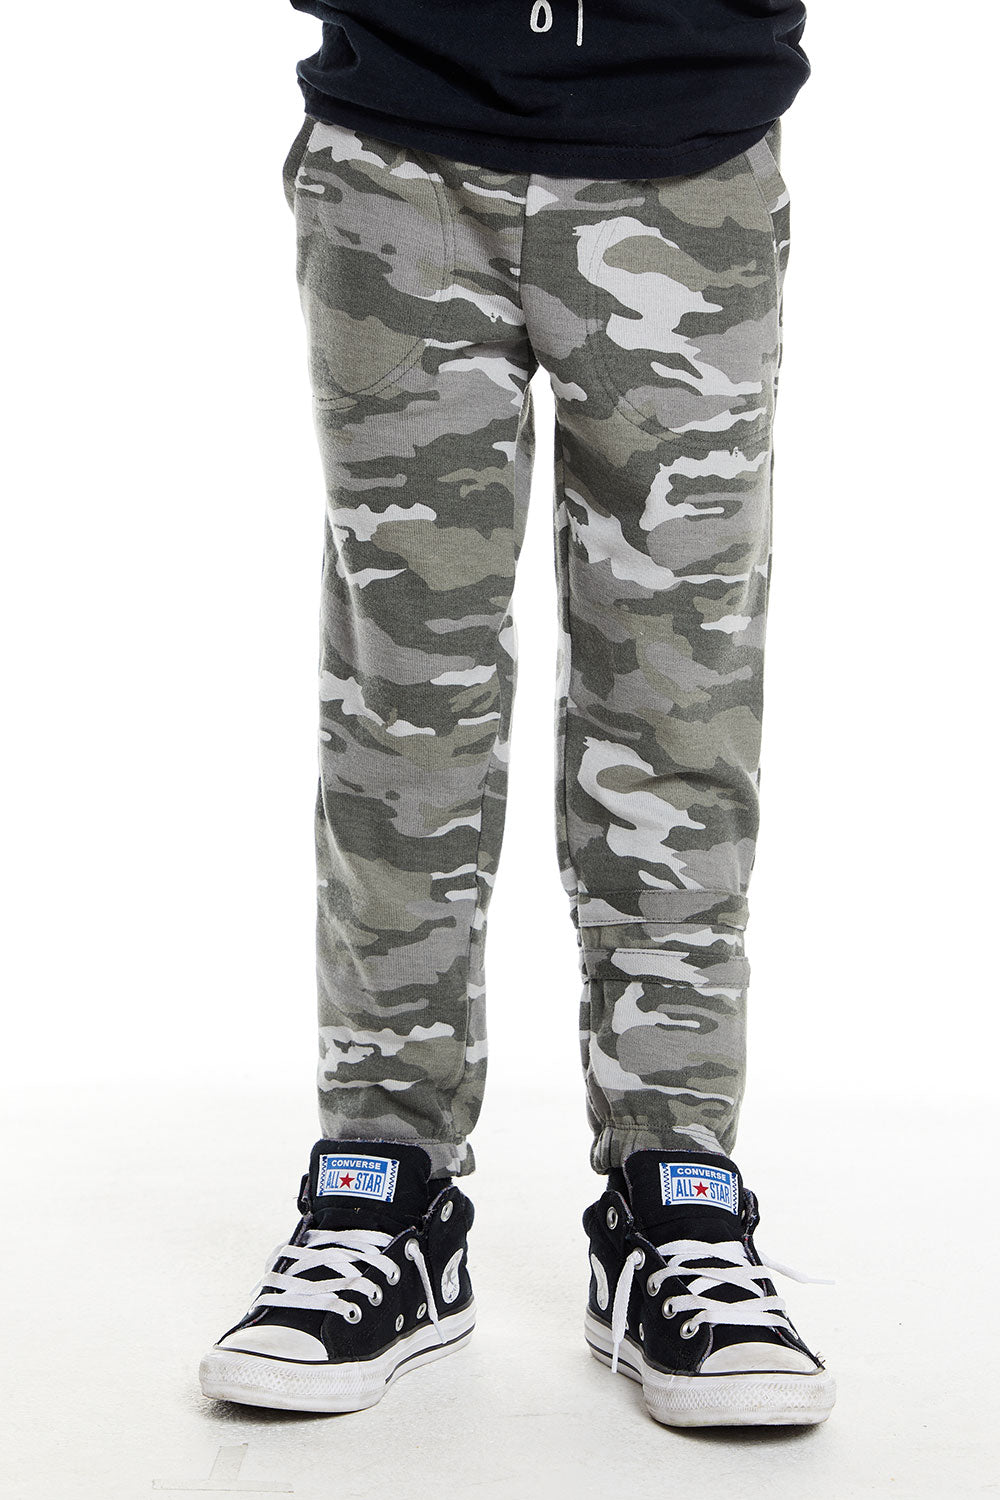 Boys Love Knit Lounge Pant with Strappings BOYS chaserbrand4.myshopify.com